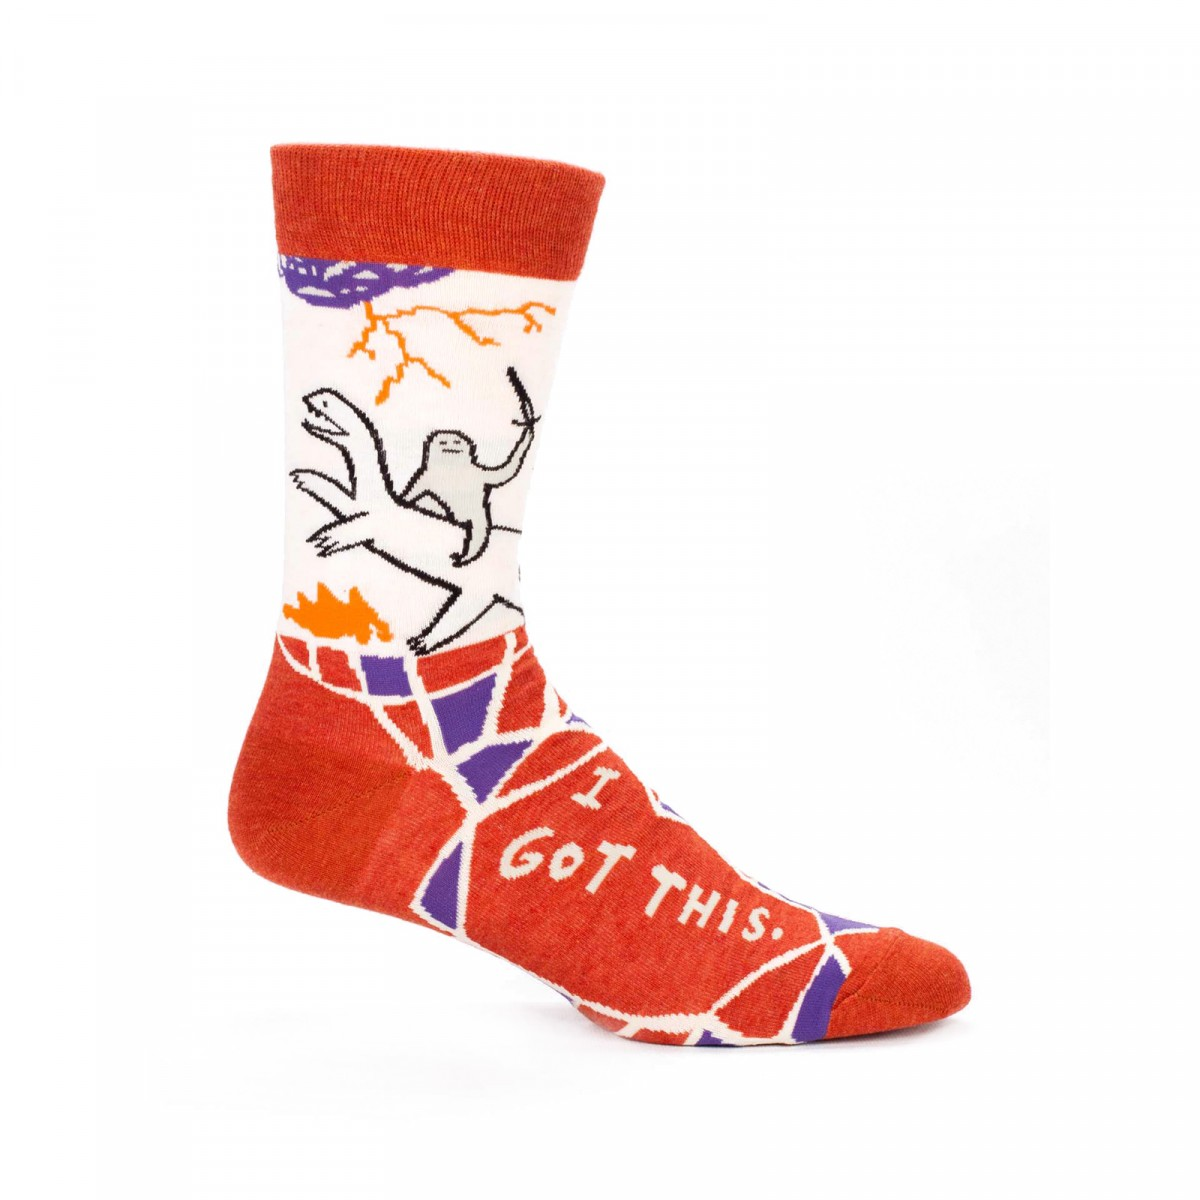 I GOT THIS MEN'S SOCKS - They haven't got it, not one bit, but hey, fake it till ya make it?! Socks that help with the brutal nature of graduation.